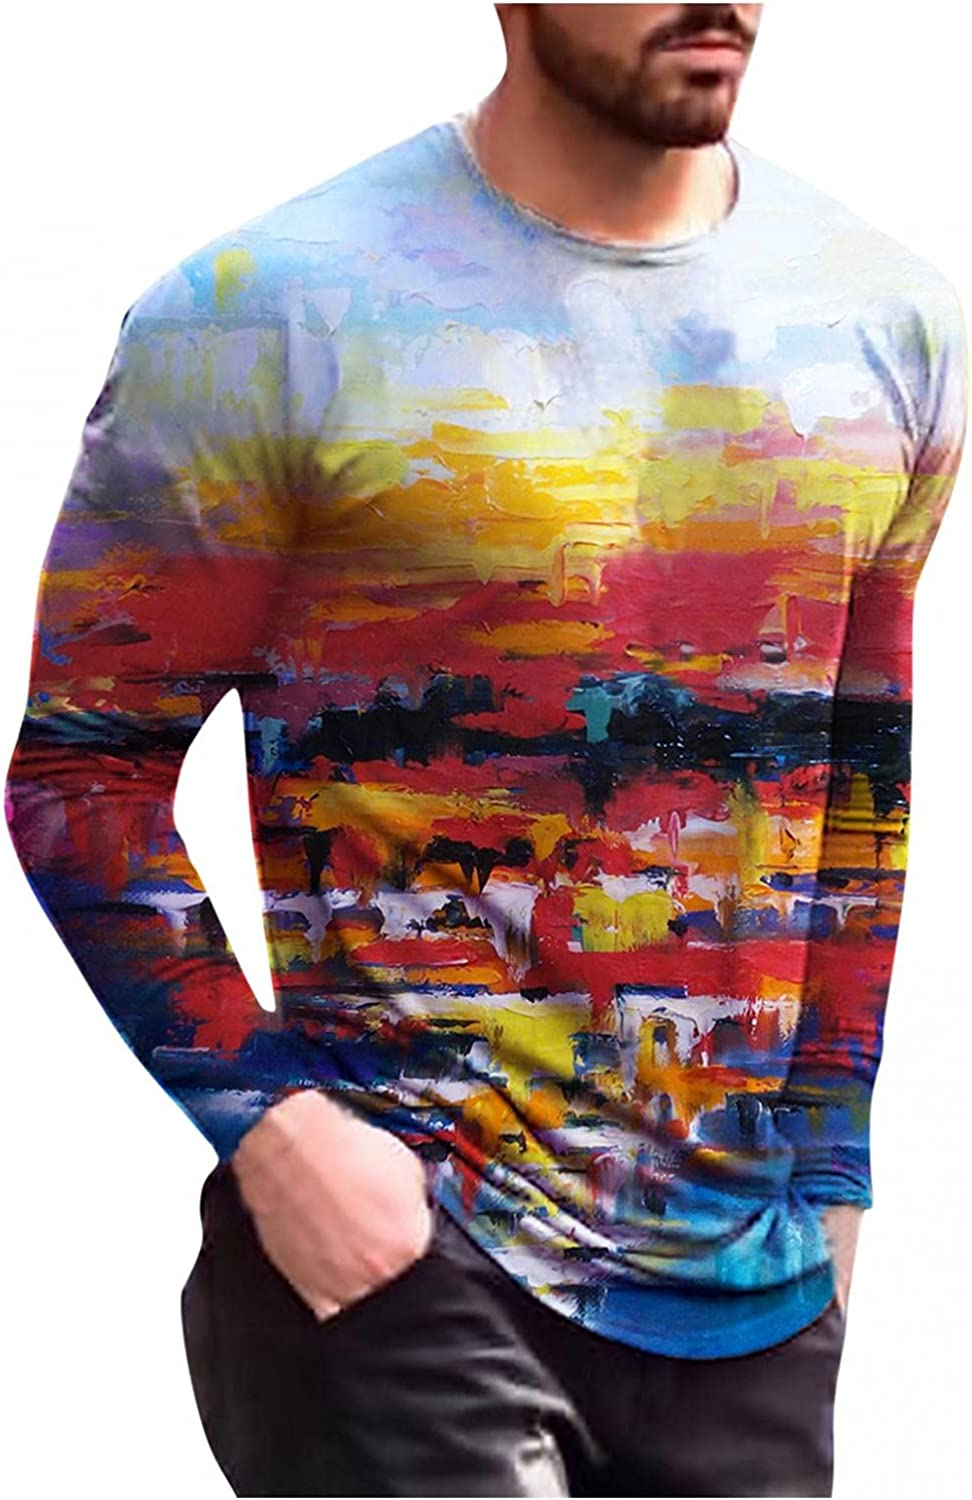 Aayomet Men's T Shirts Abstract Printed Long Sleeve Round Neck Sweatshirts Casual Workout Sport Tee Shirts Blouses Tops